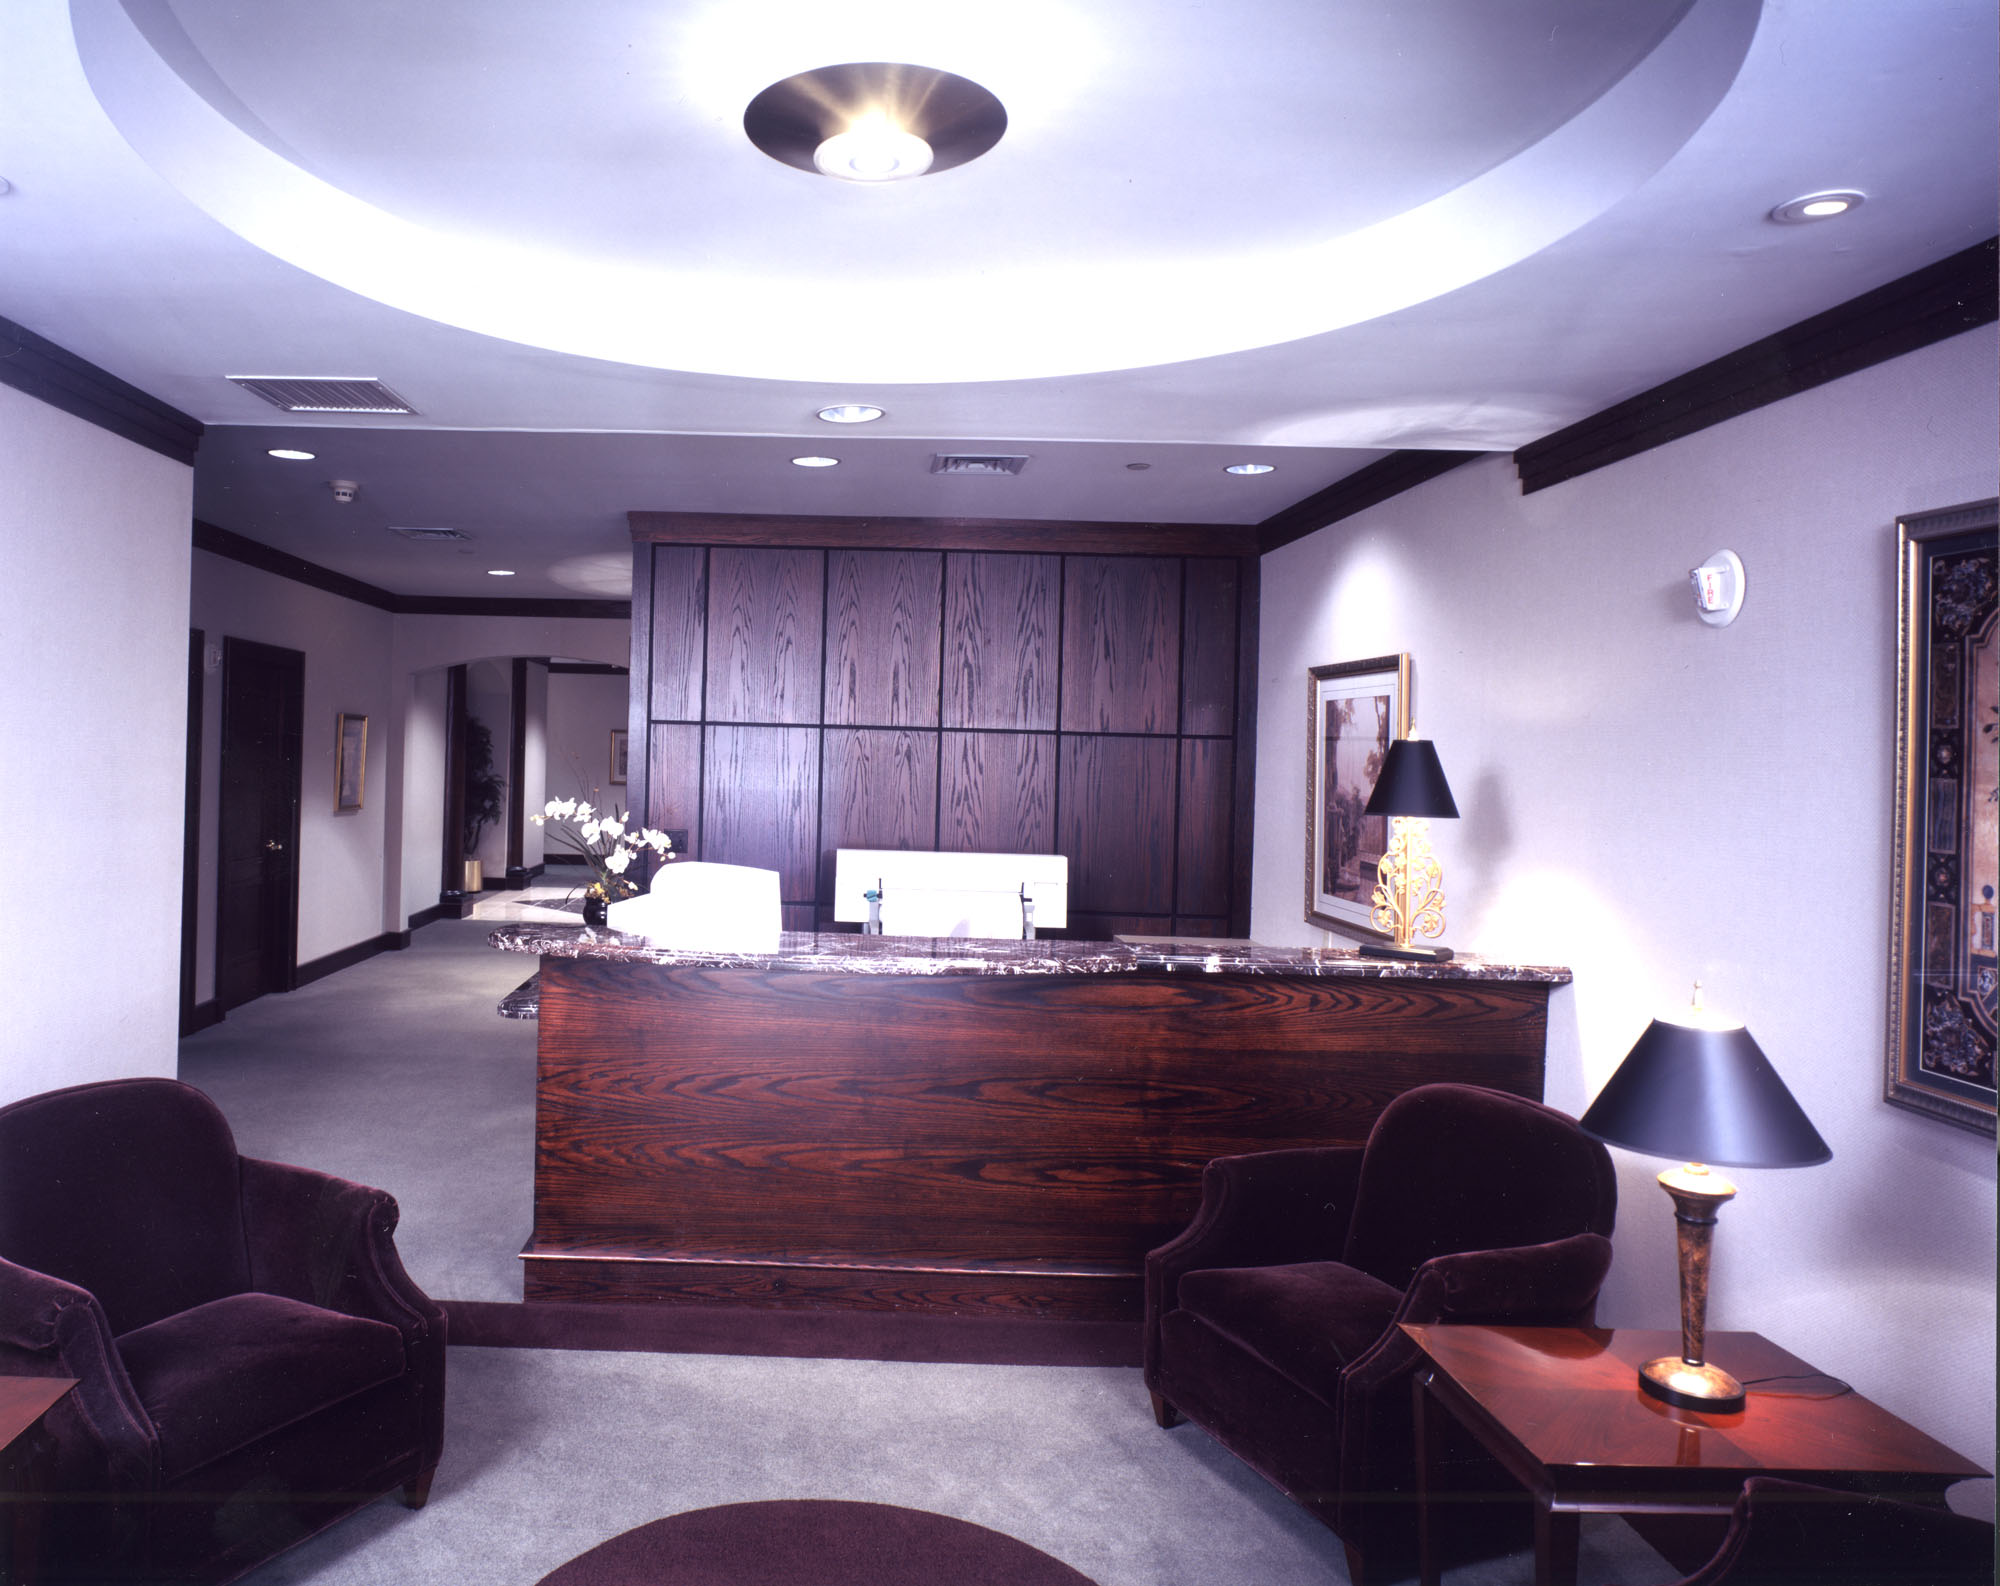 Chapel Of The Chimes   Hayward 05. Funeral Homes, Interior Design ...